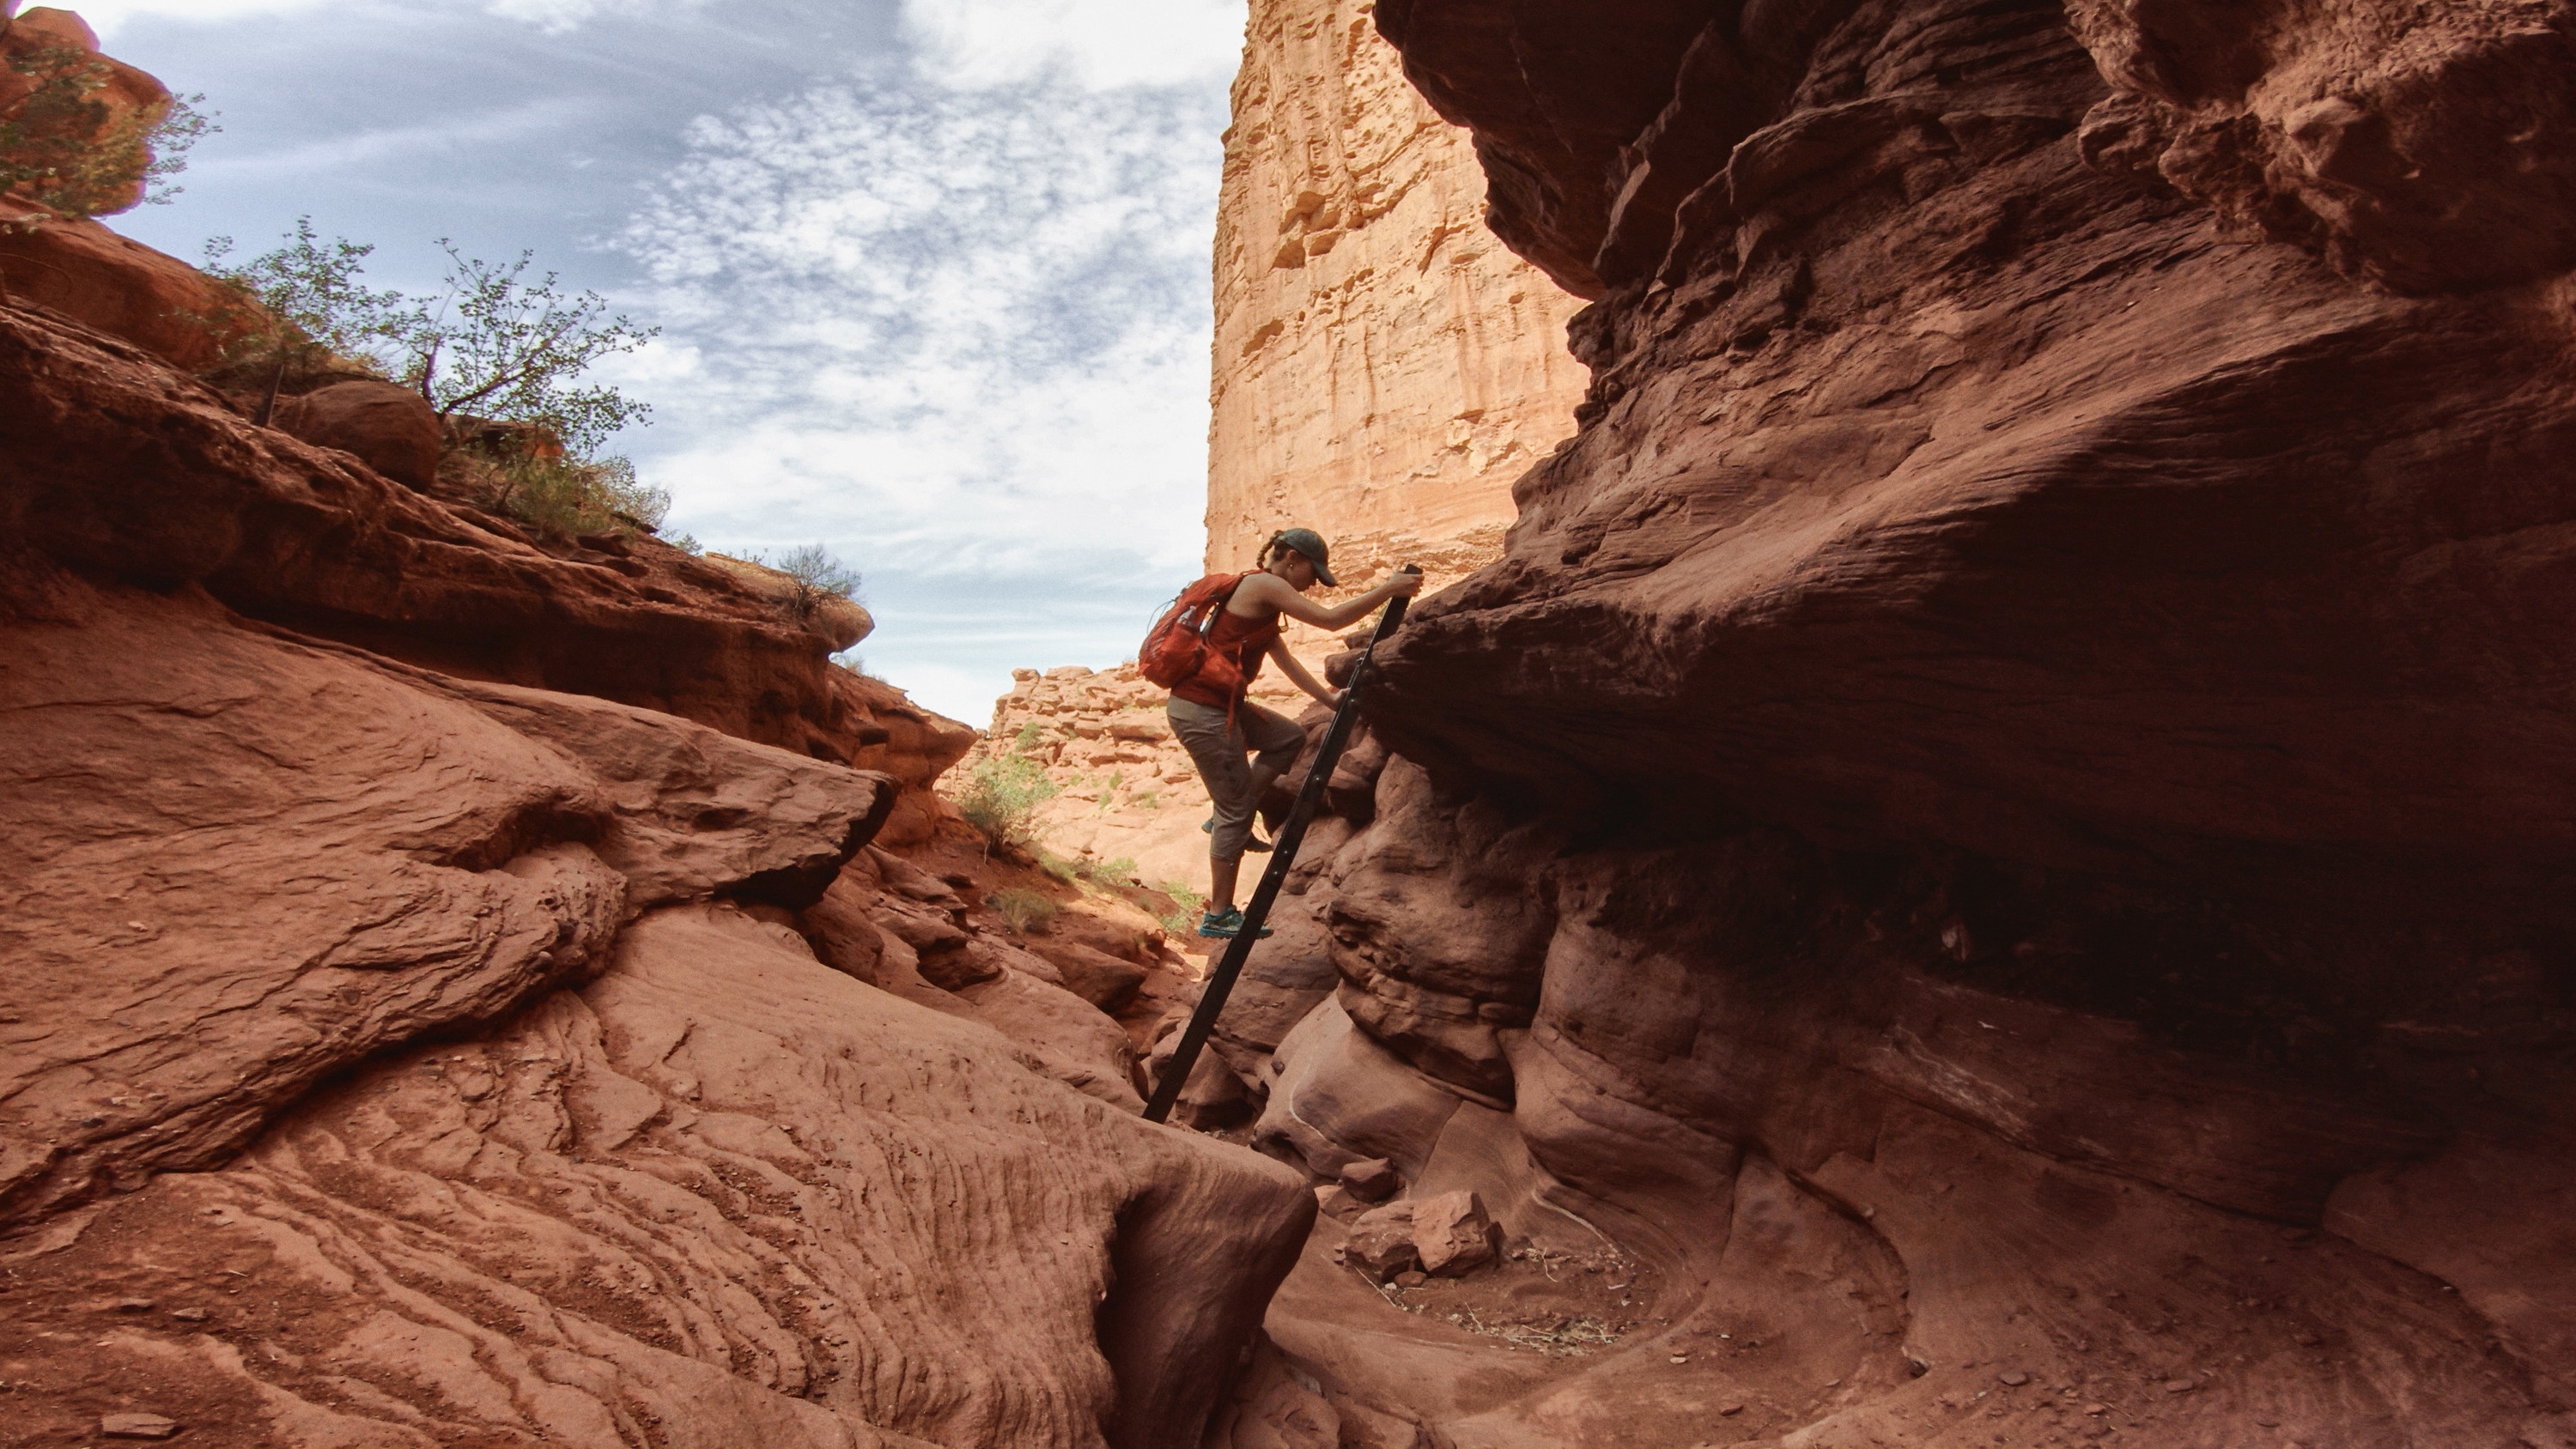 A hiking climbing in Canyonlands National Park